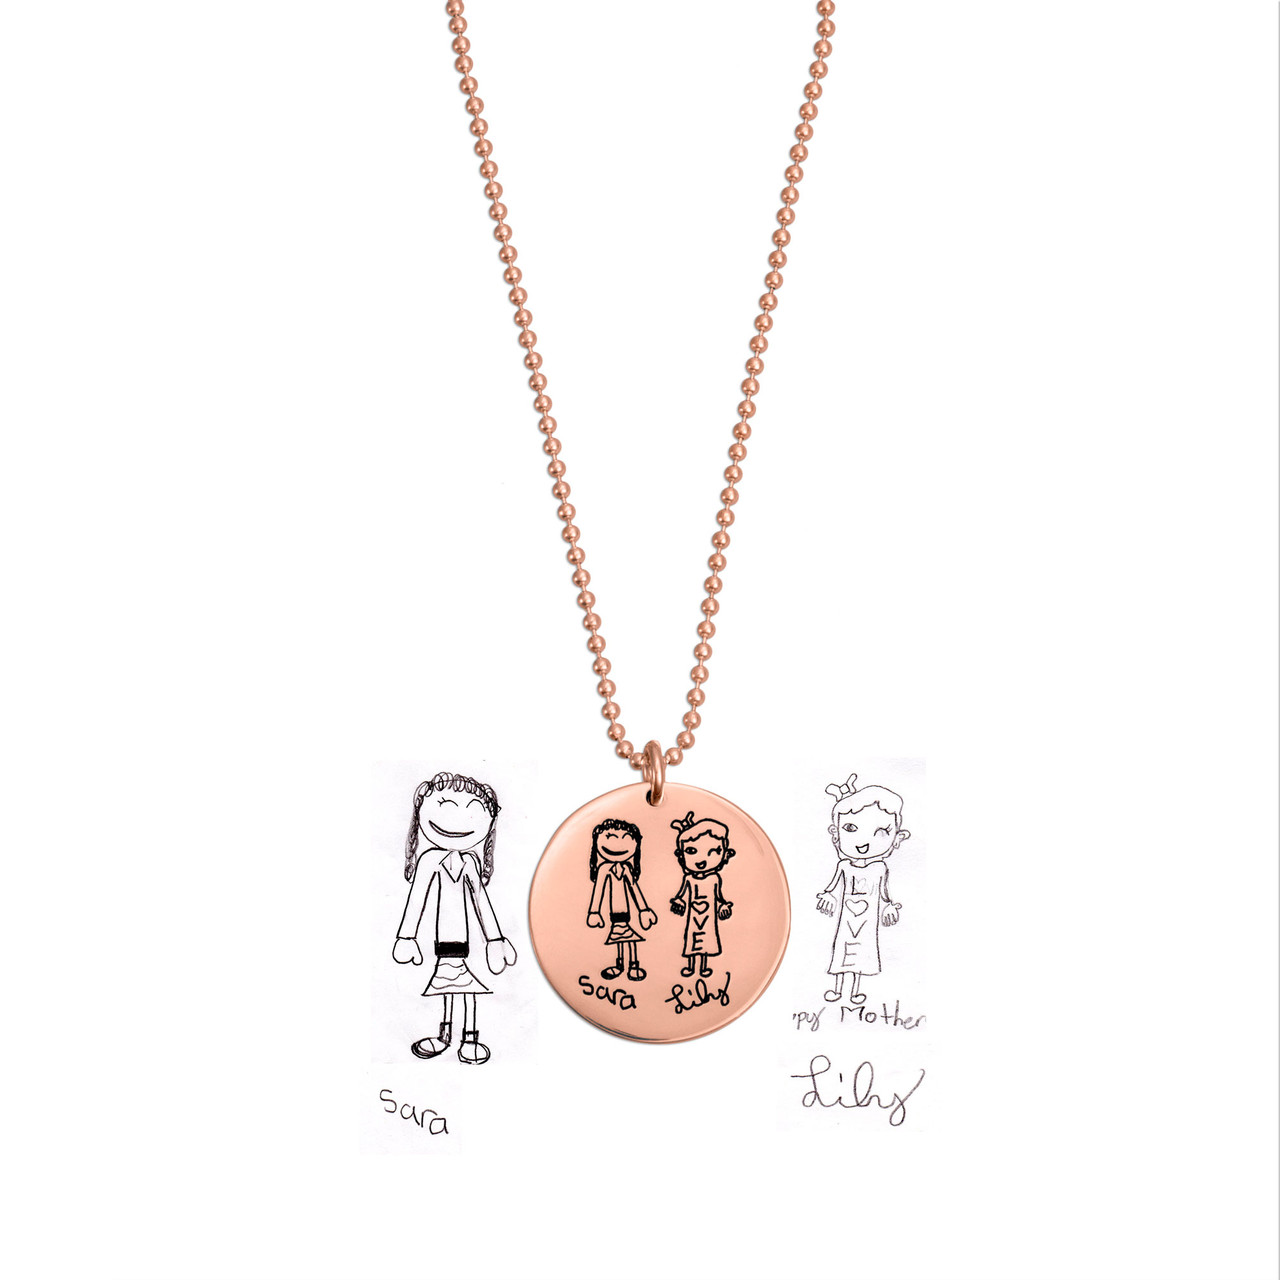 Rose gold disc handwriting necklace, shown with original handwritten artwork used to create it